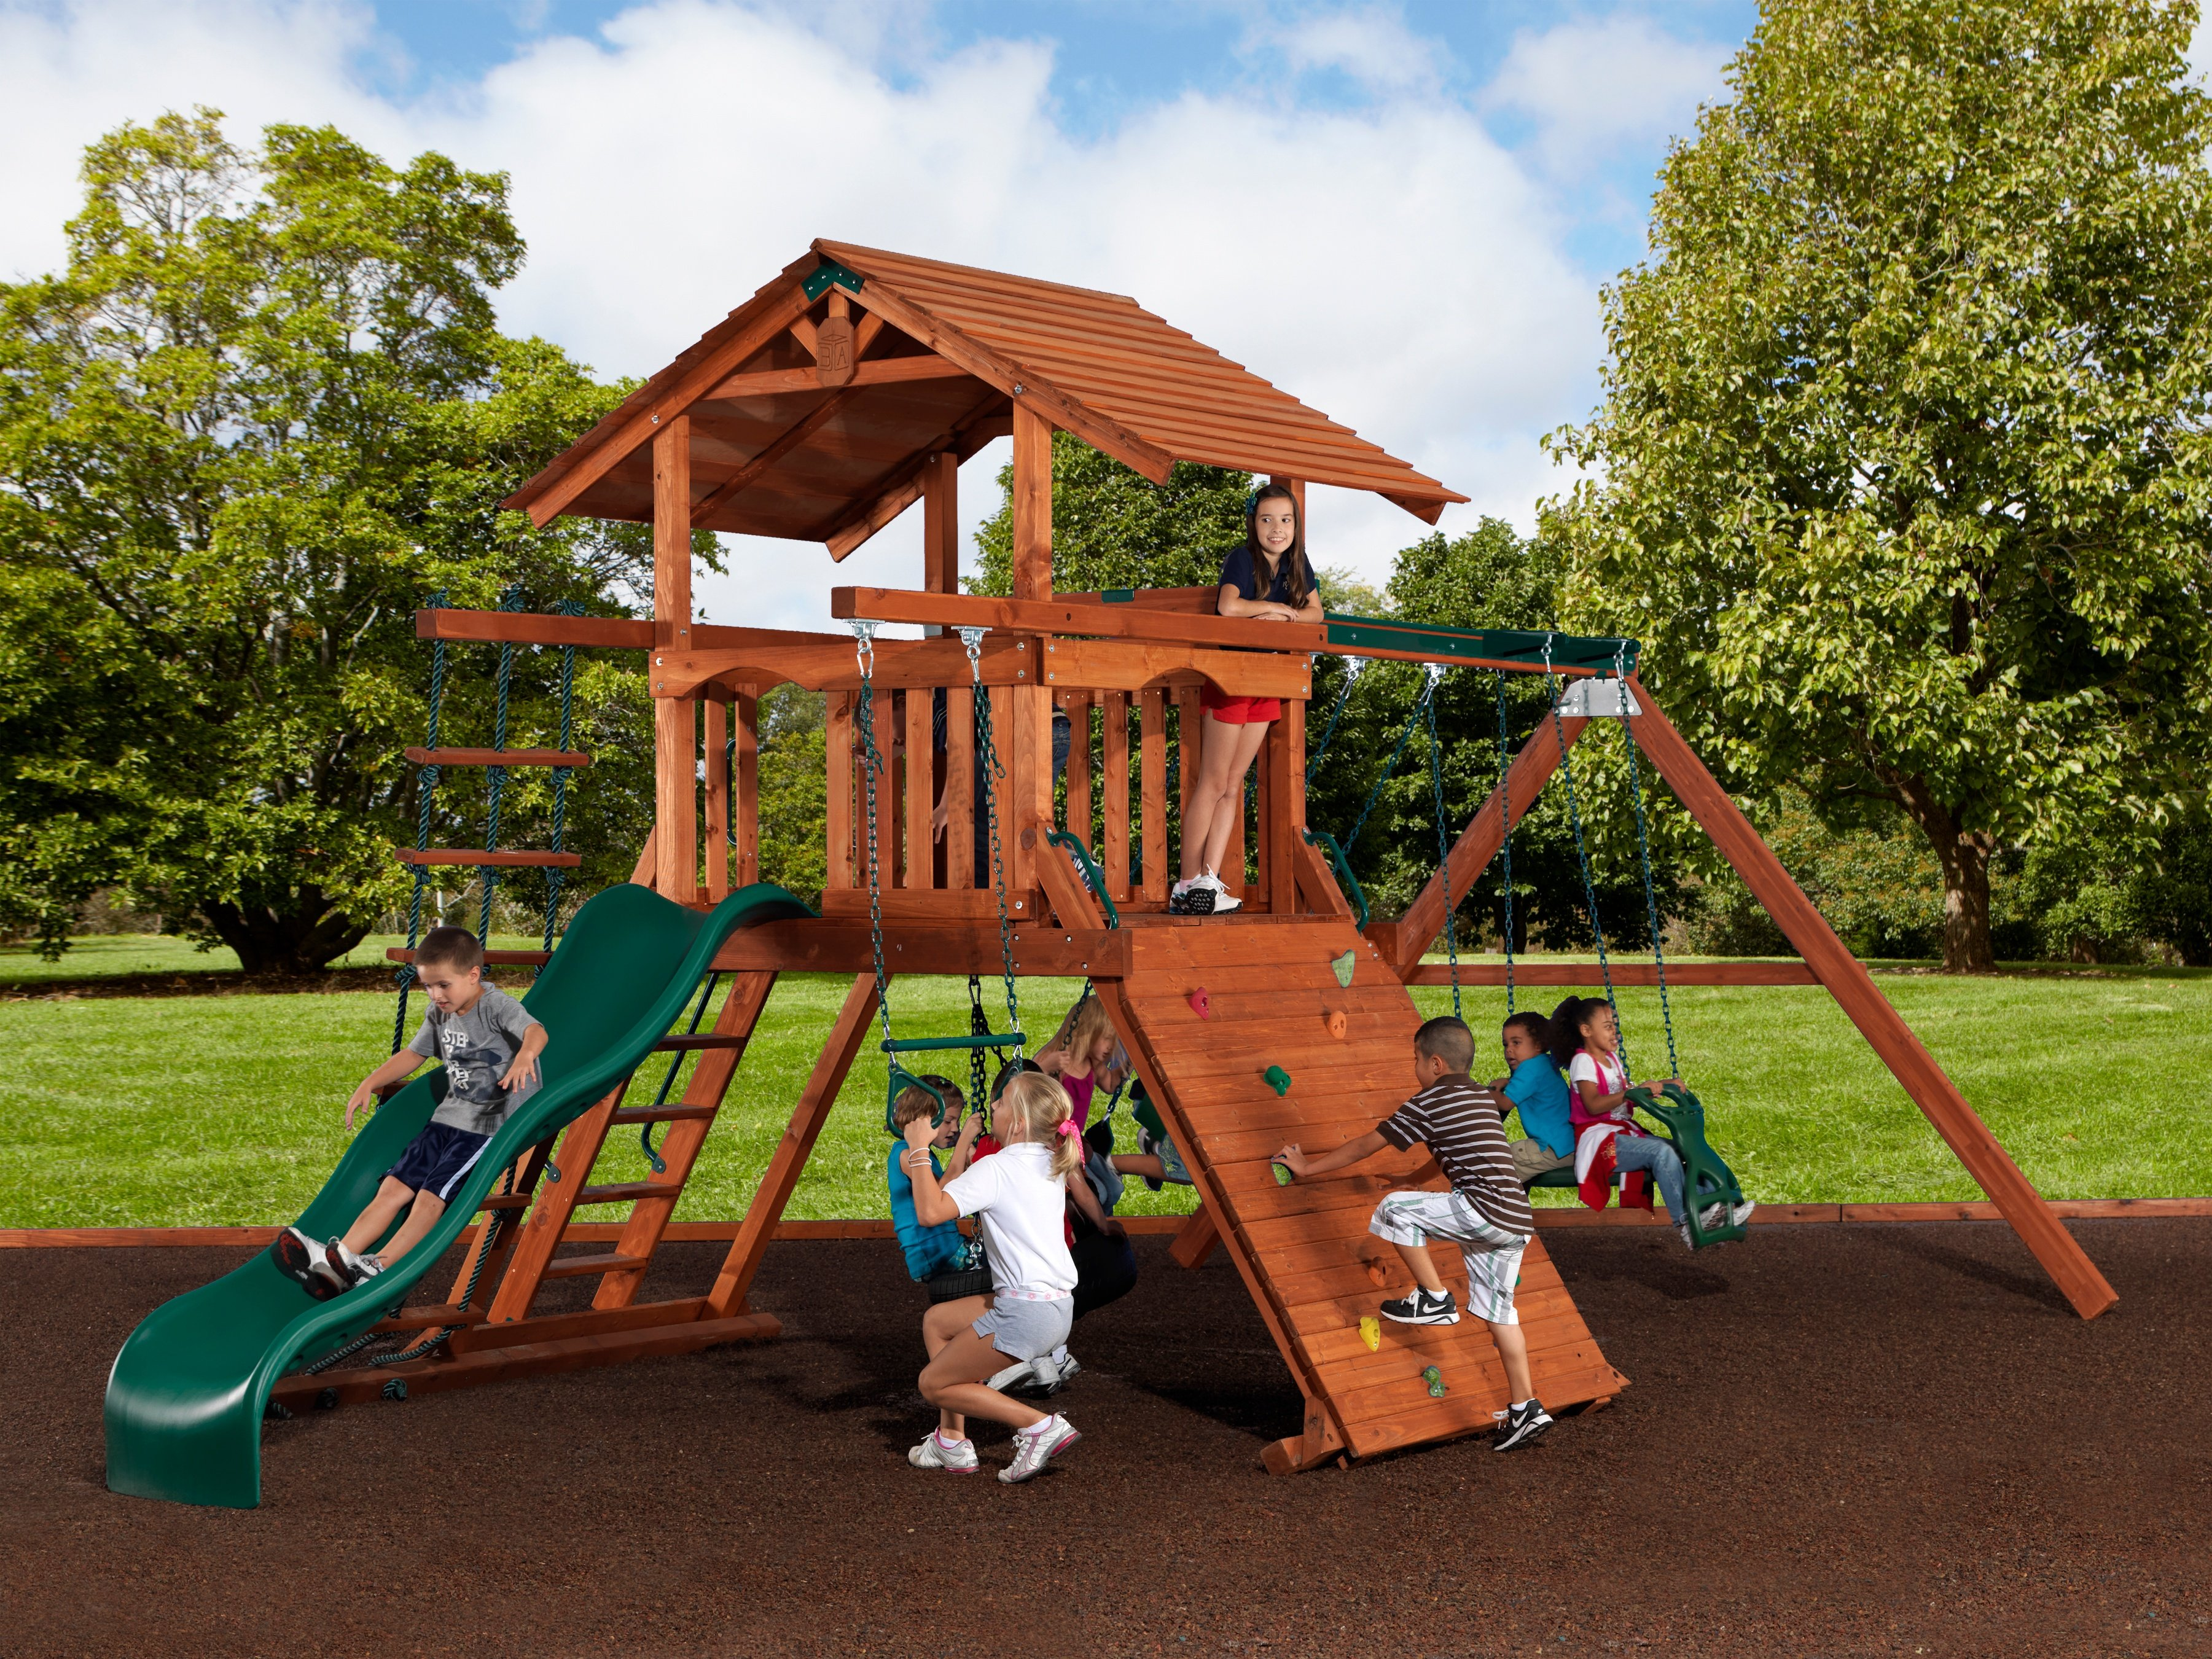 Exceptionnel Backyard Adventures Idaho Playsets Mountaineer 1 Playground Wooden Install  ...